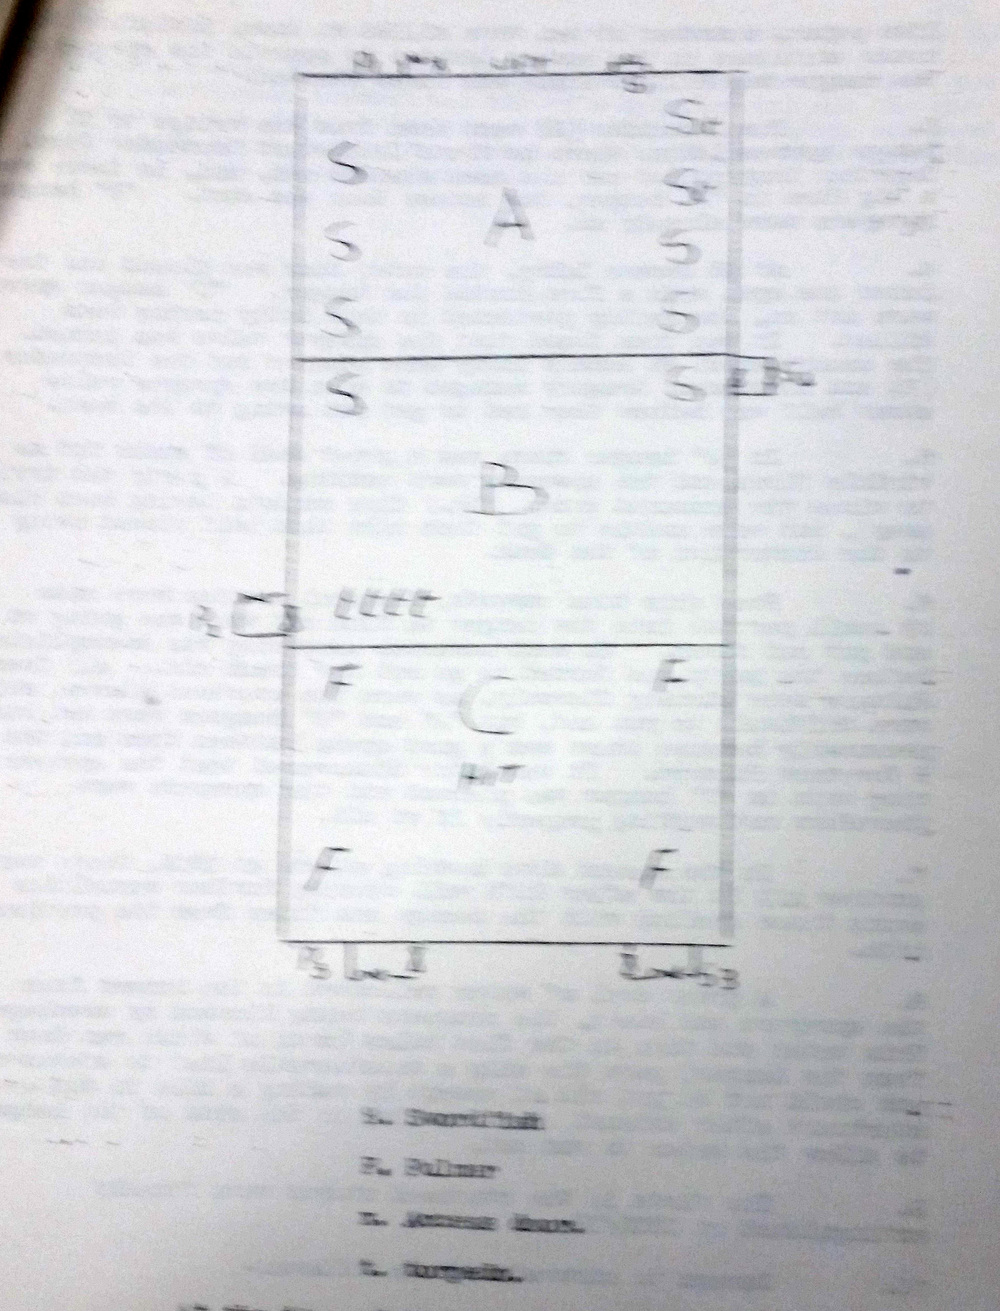 "This unfortunately blurry photo of a page from HMS Illustrious' Captain's Proceedings Report for the action shows the positions of the aircraft in the hangar at the time of the attack. ""S"" stands for Swordfish, ""St"" stands for Swordfish armed with a torpedo, ""t"" represents the position of 'action ready' torpedo reserves and ""F"" locates the Fulmars."